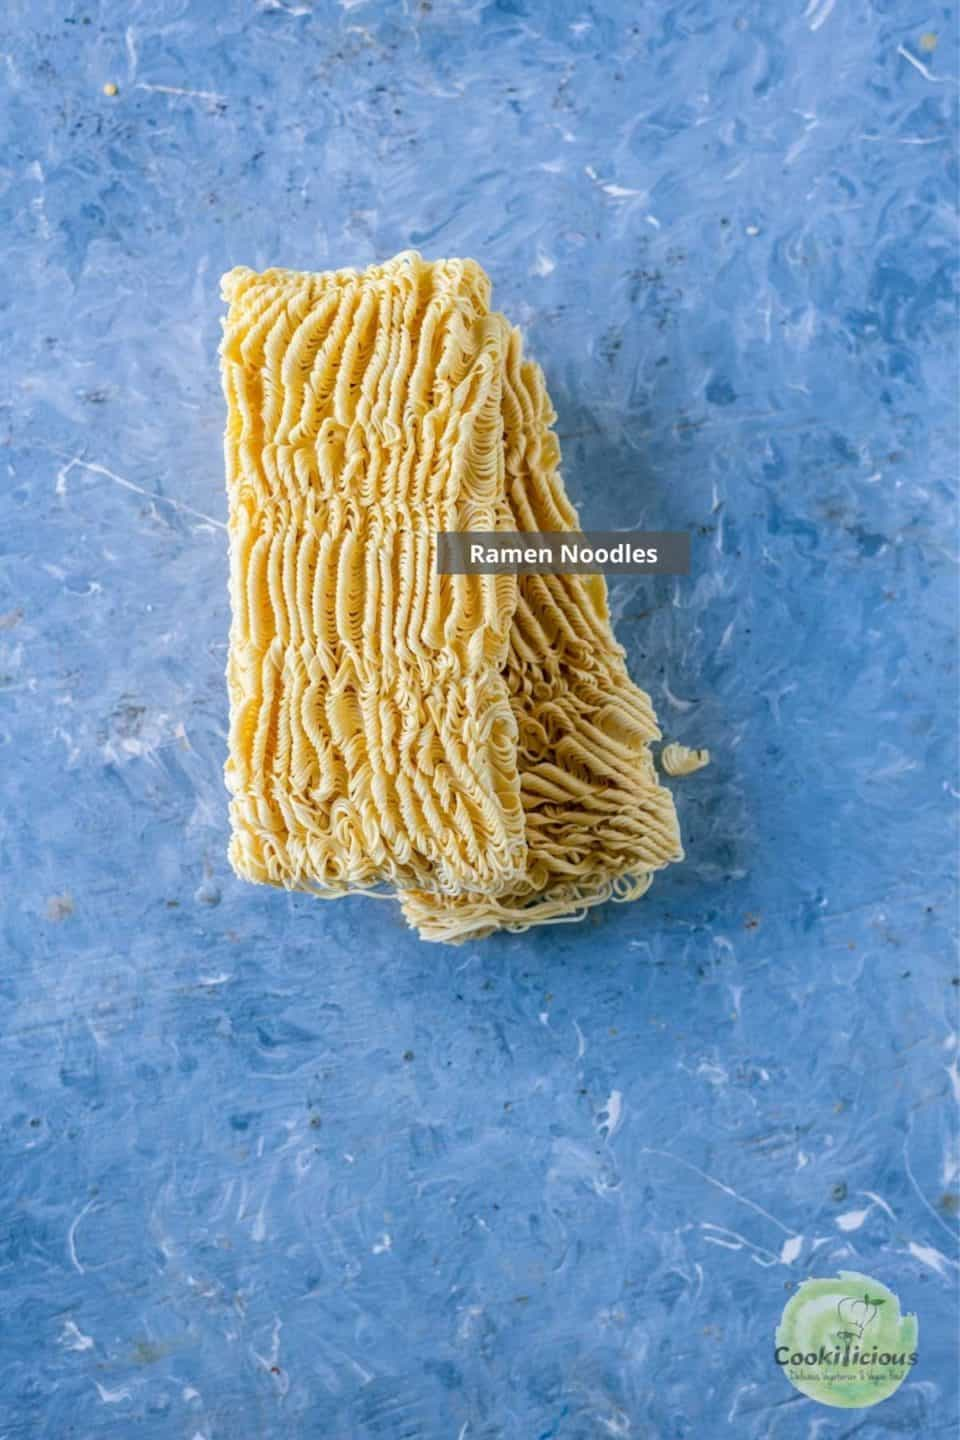 uncooked ramen noodles with label on it